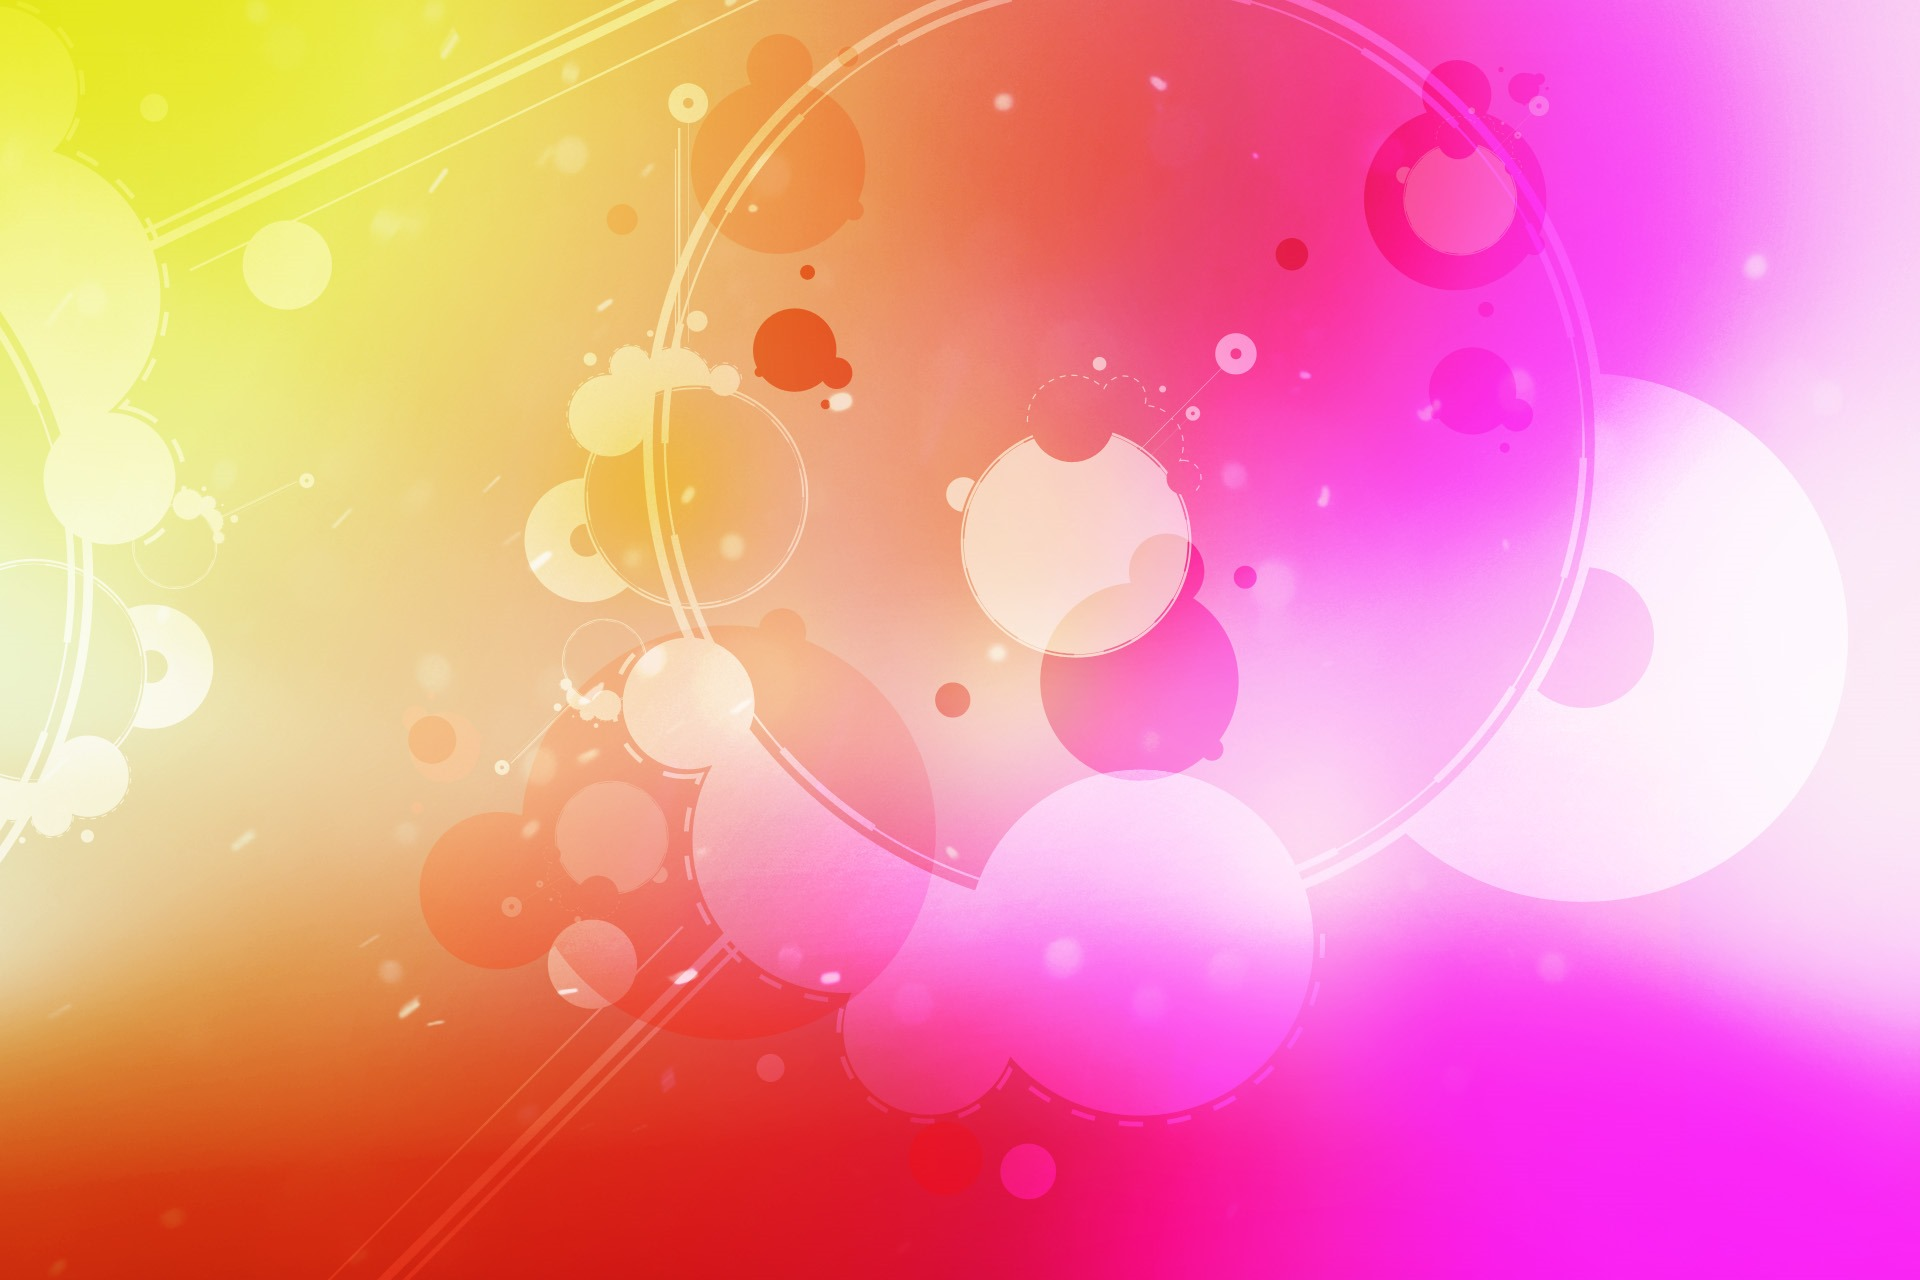 Android Jelly Bean 43 Wallpapers images  hdimagelibcom